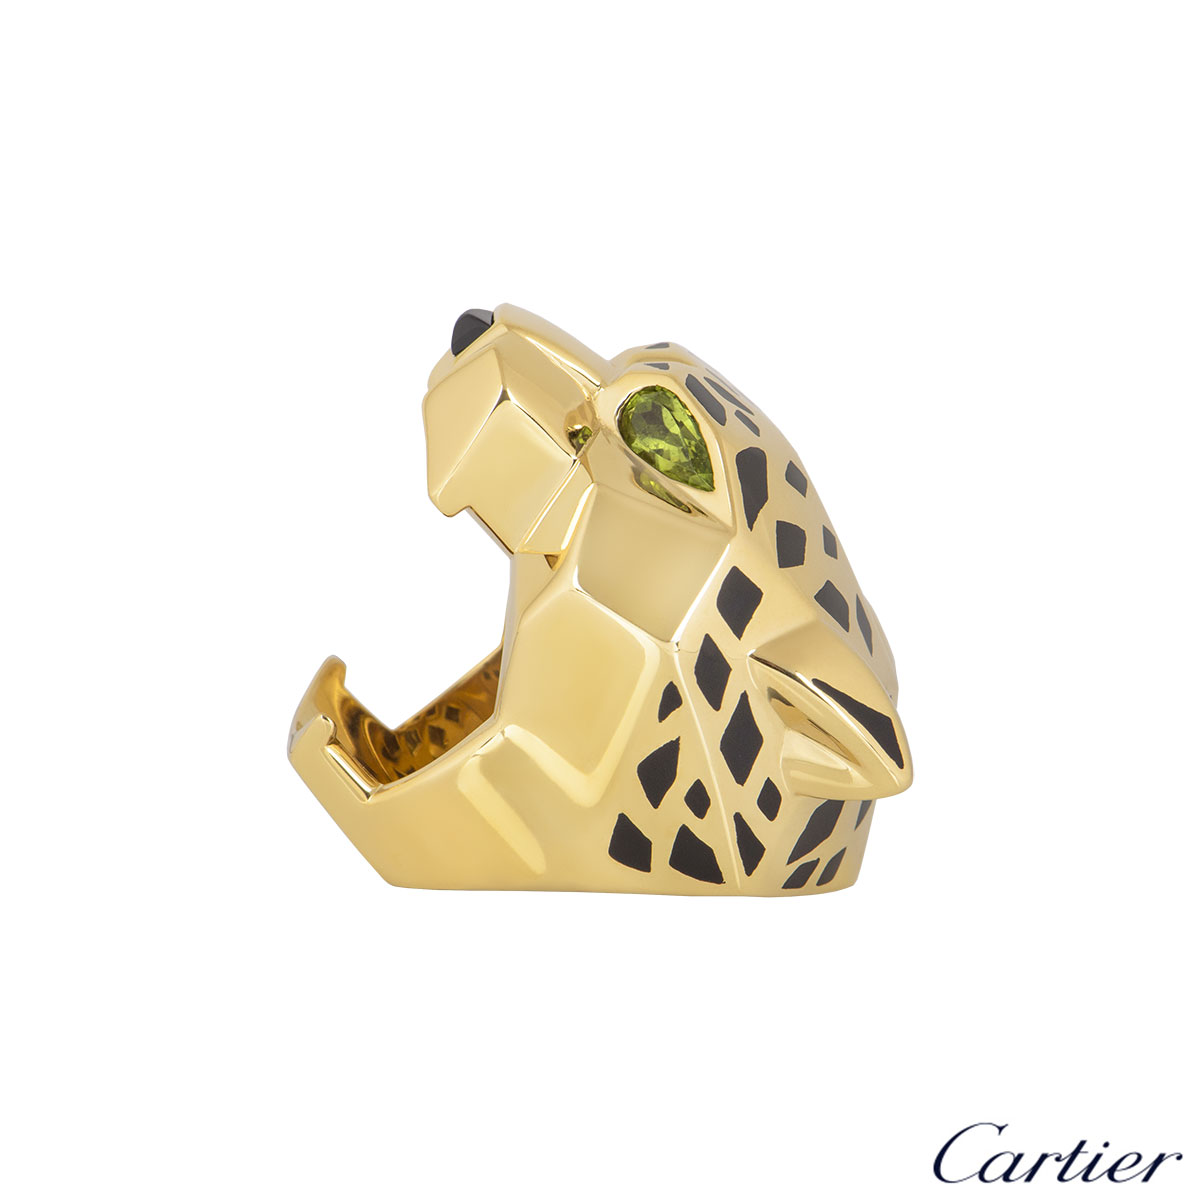 Cartier Yellow Gold Peridot and Onyx Panthere Ring Size 54 N4193154